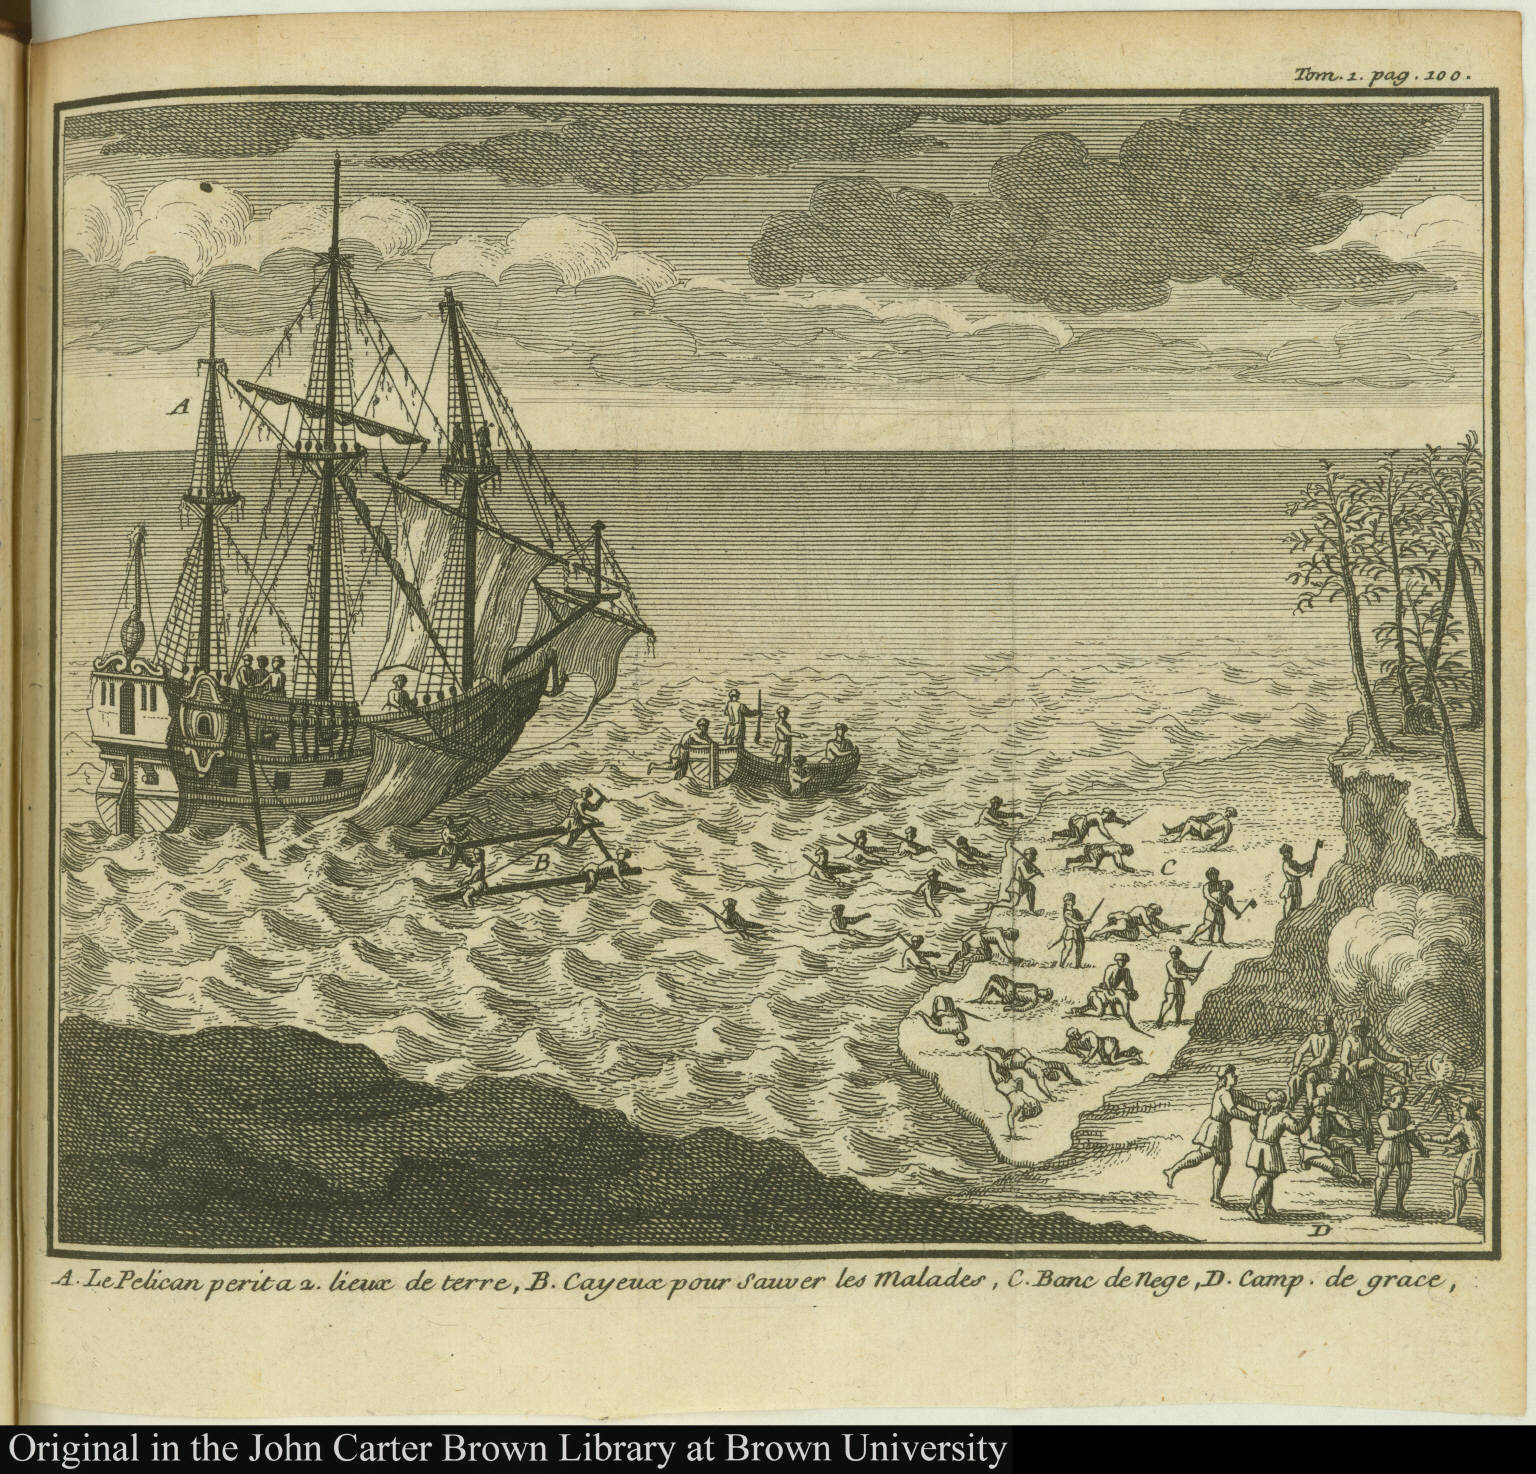 [Sinking of the ship Pelican]